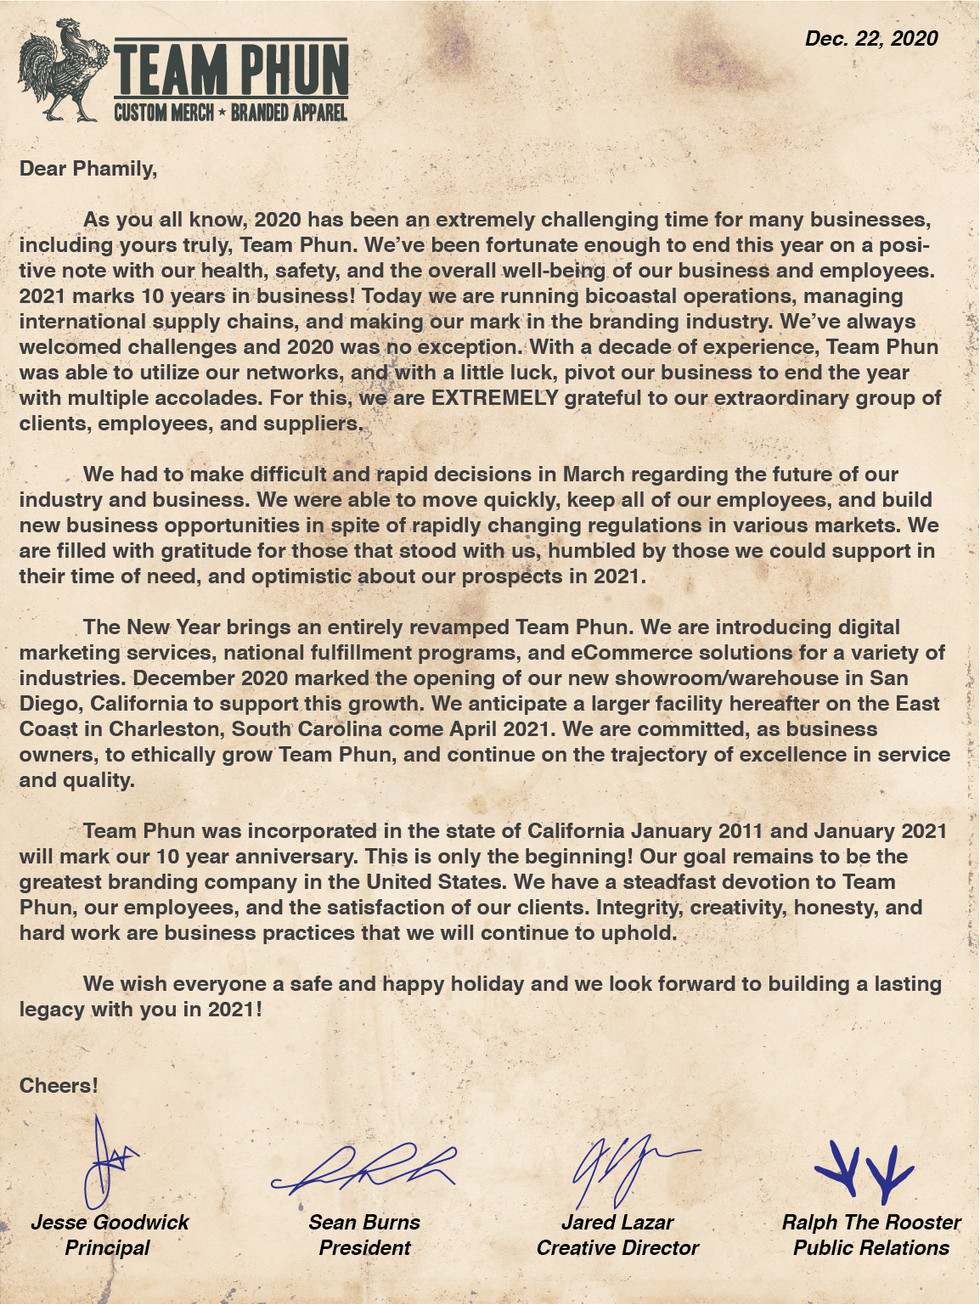 A Note From the Owners to our Phamily